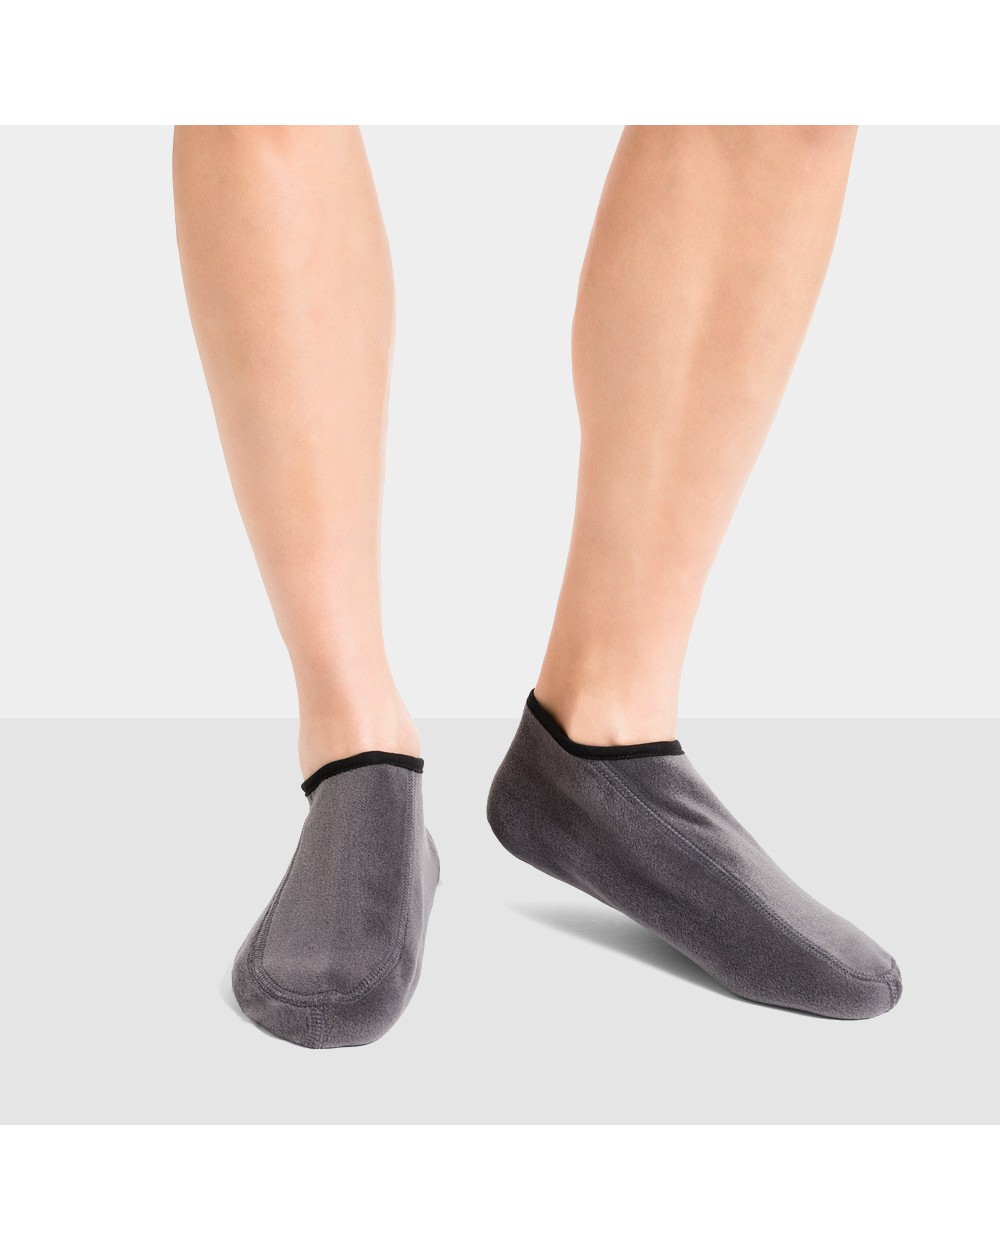 Chaussons polaires unies